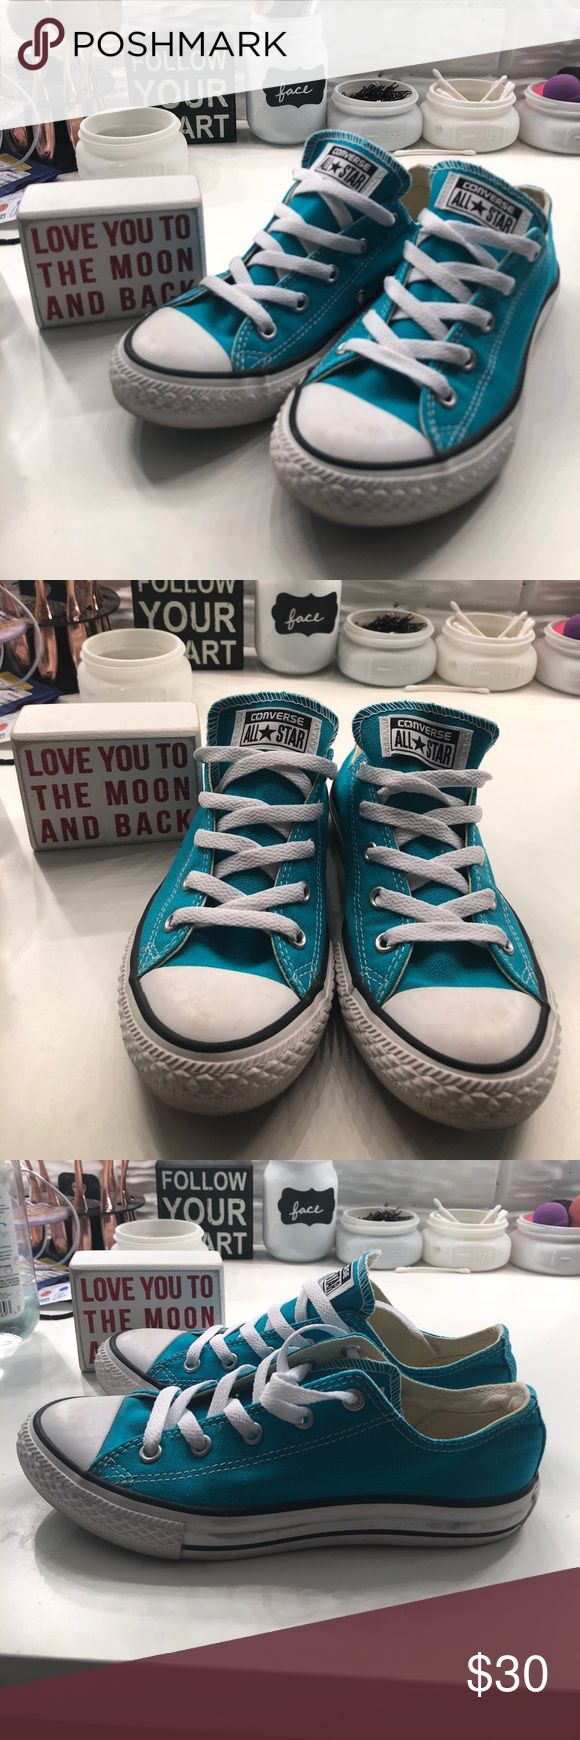 TEAL CONVERSE  Beautiful teal low-top chucks. Never worn  Converse Shoes Sneakers